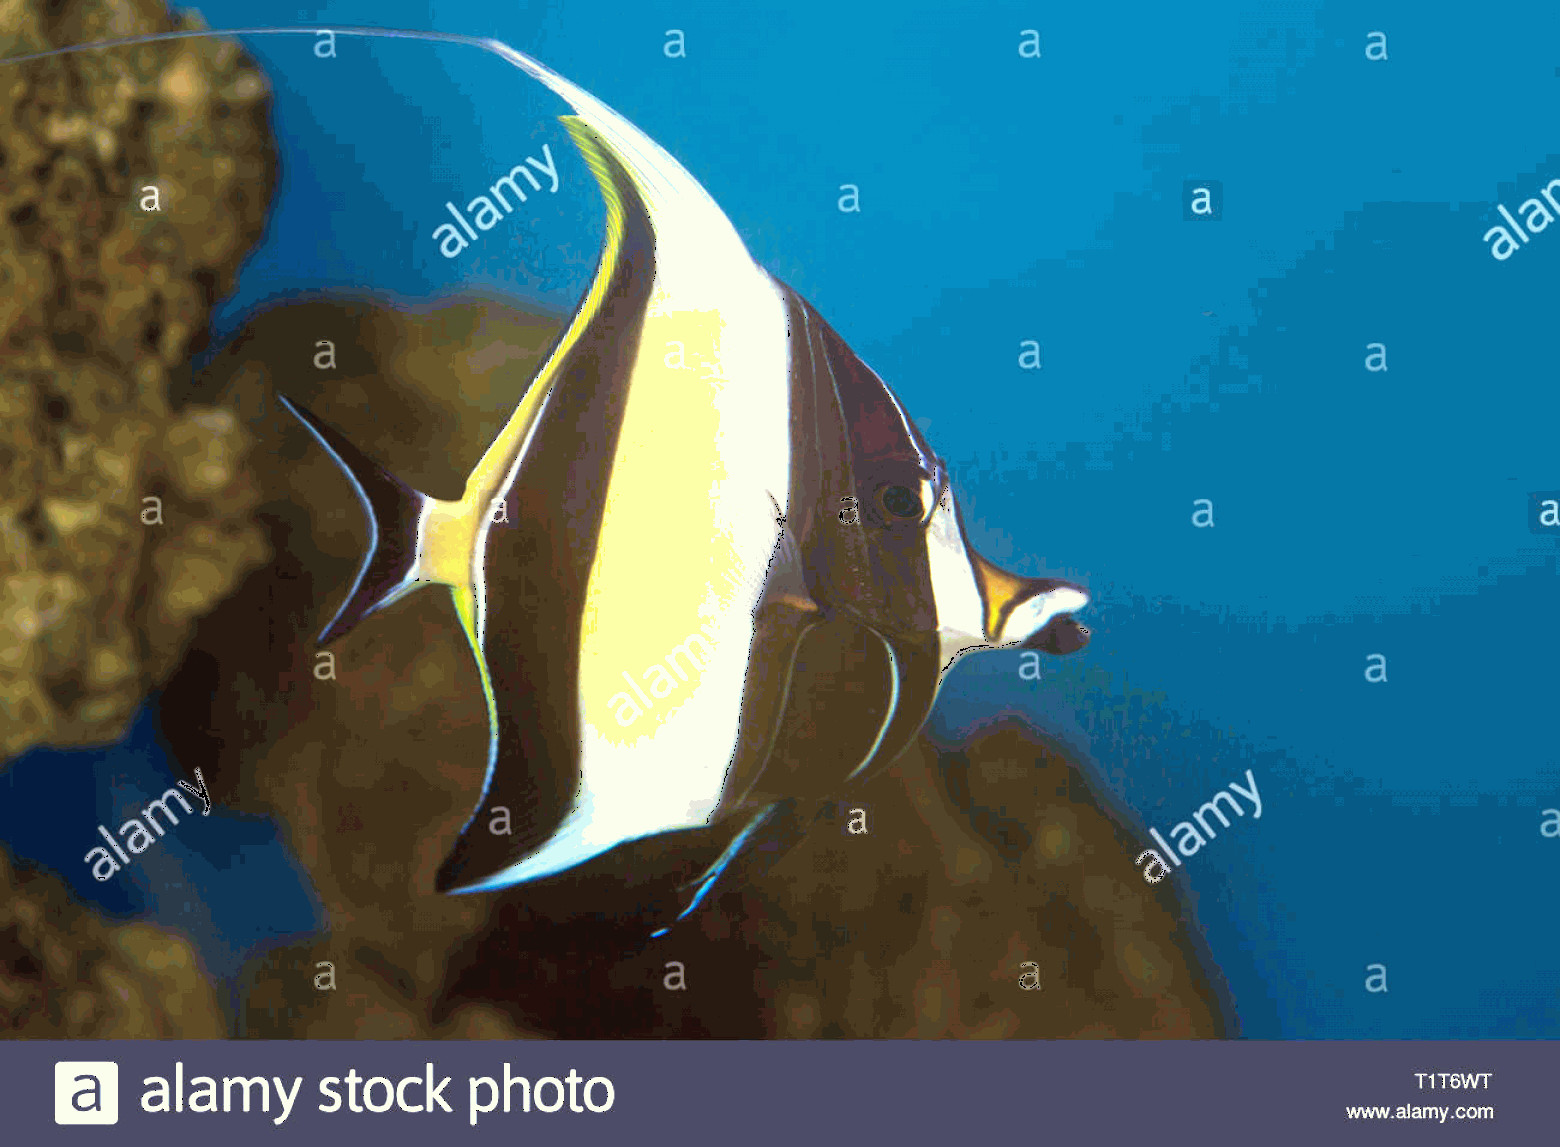 Vector Finding Nemo Fish: Moorish Idol The Type Of Fish Known As Gill In Finding Nemo Image